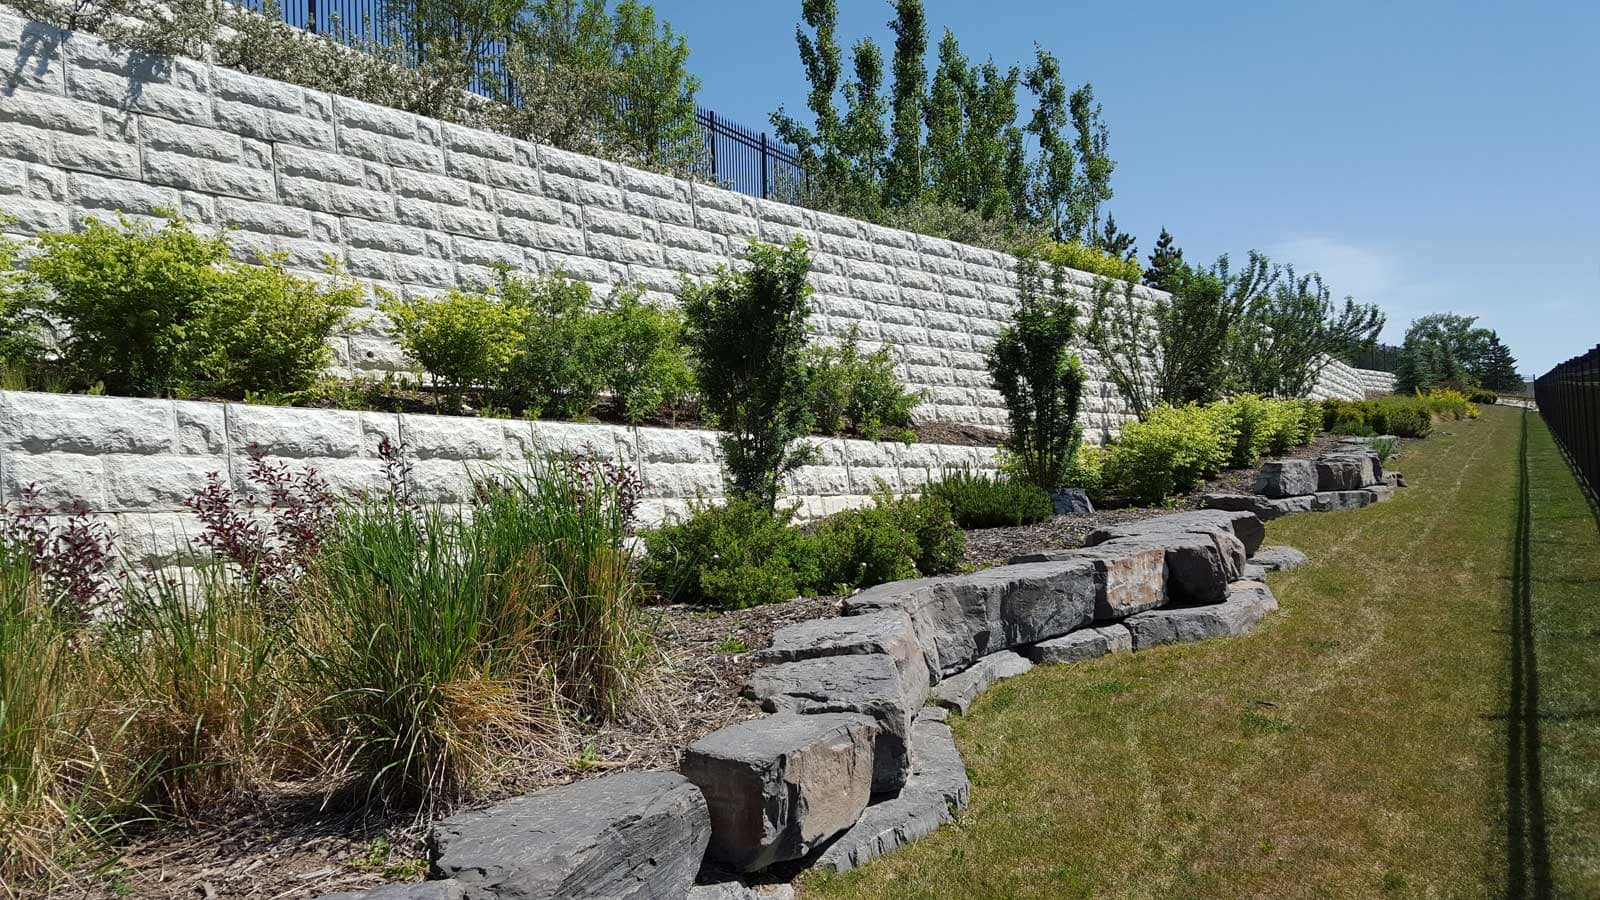 MagnumStone Block Retaining Wall Random Boulder Face Landscaped